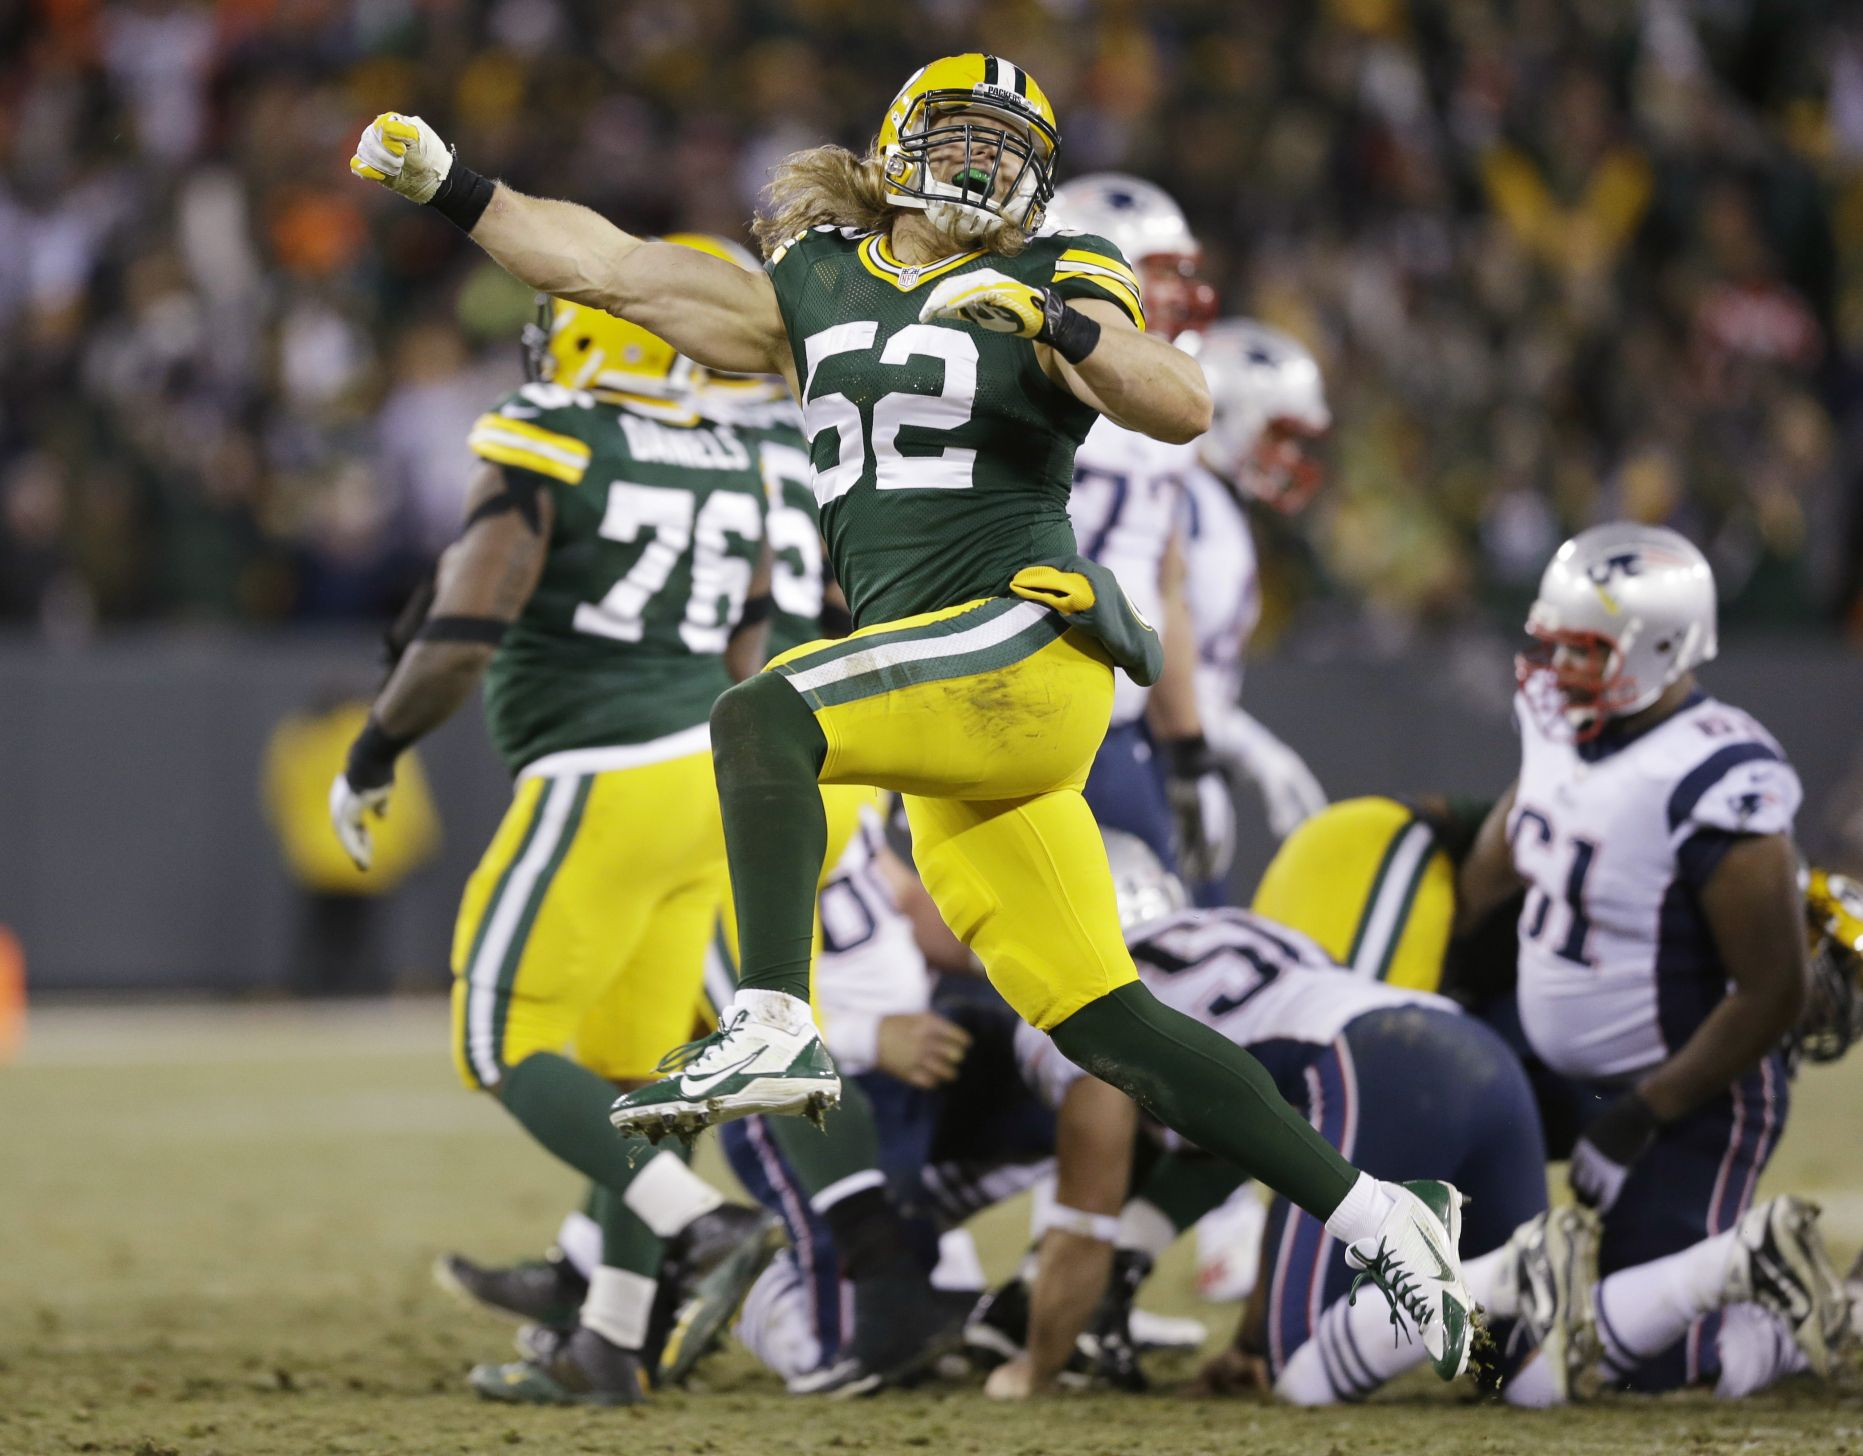 Packers Beat Patriots 26 21 As Rodgers Outduels Brady Green Bay Packers Green Bay Packers Fans Green Bay Packers Players